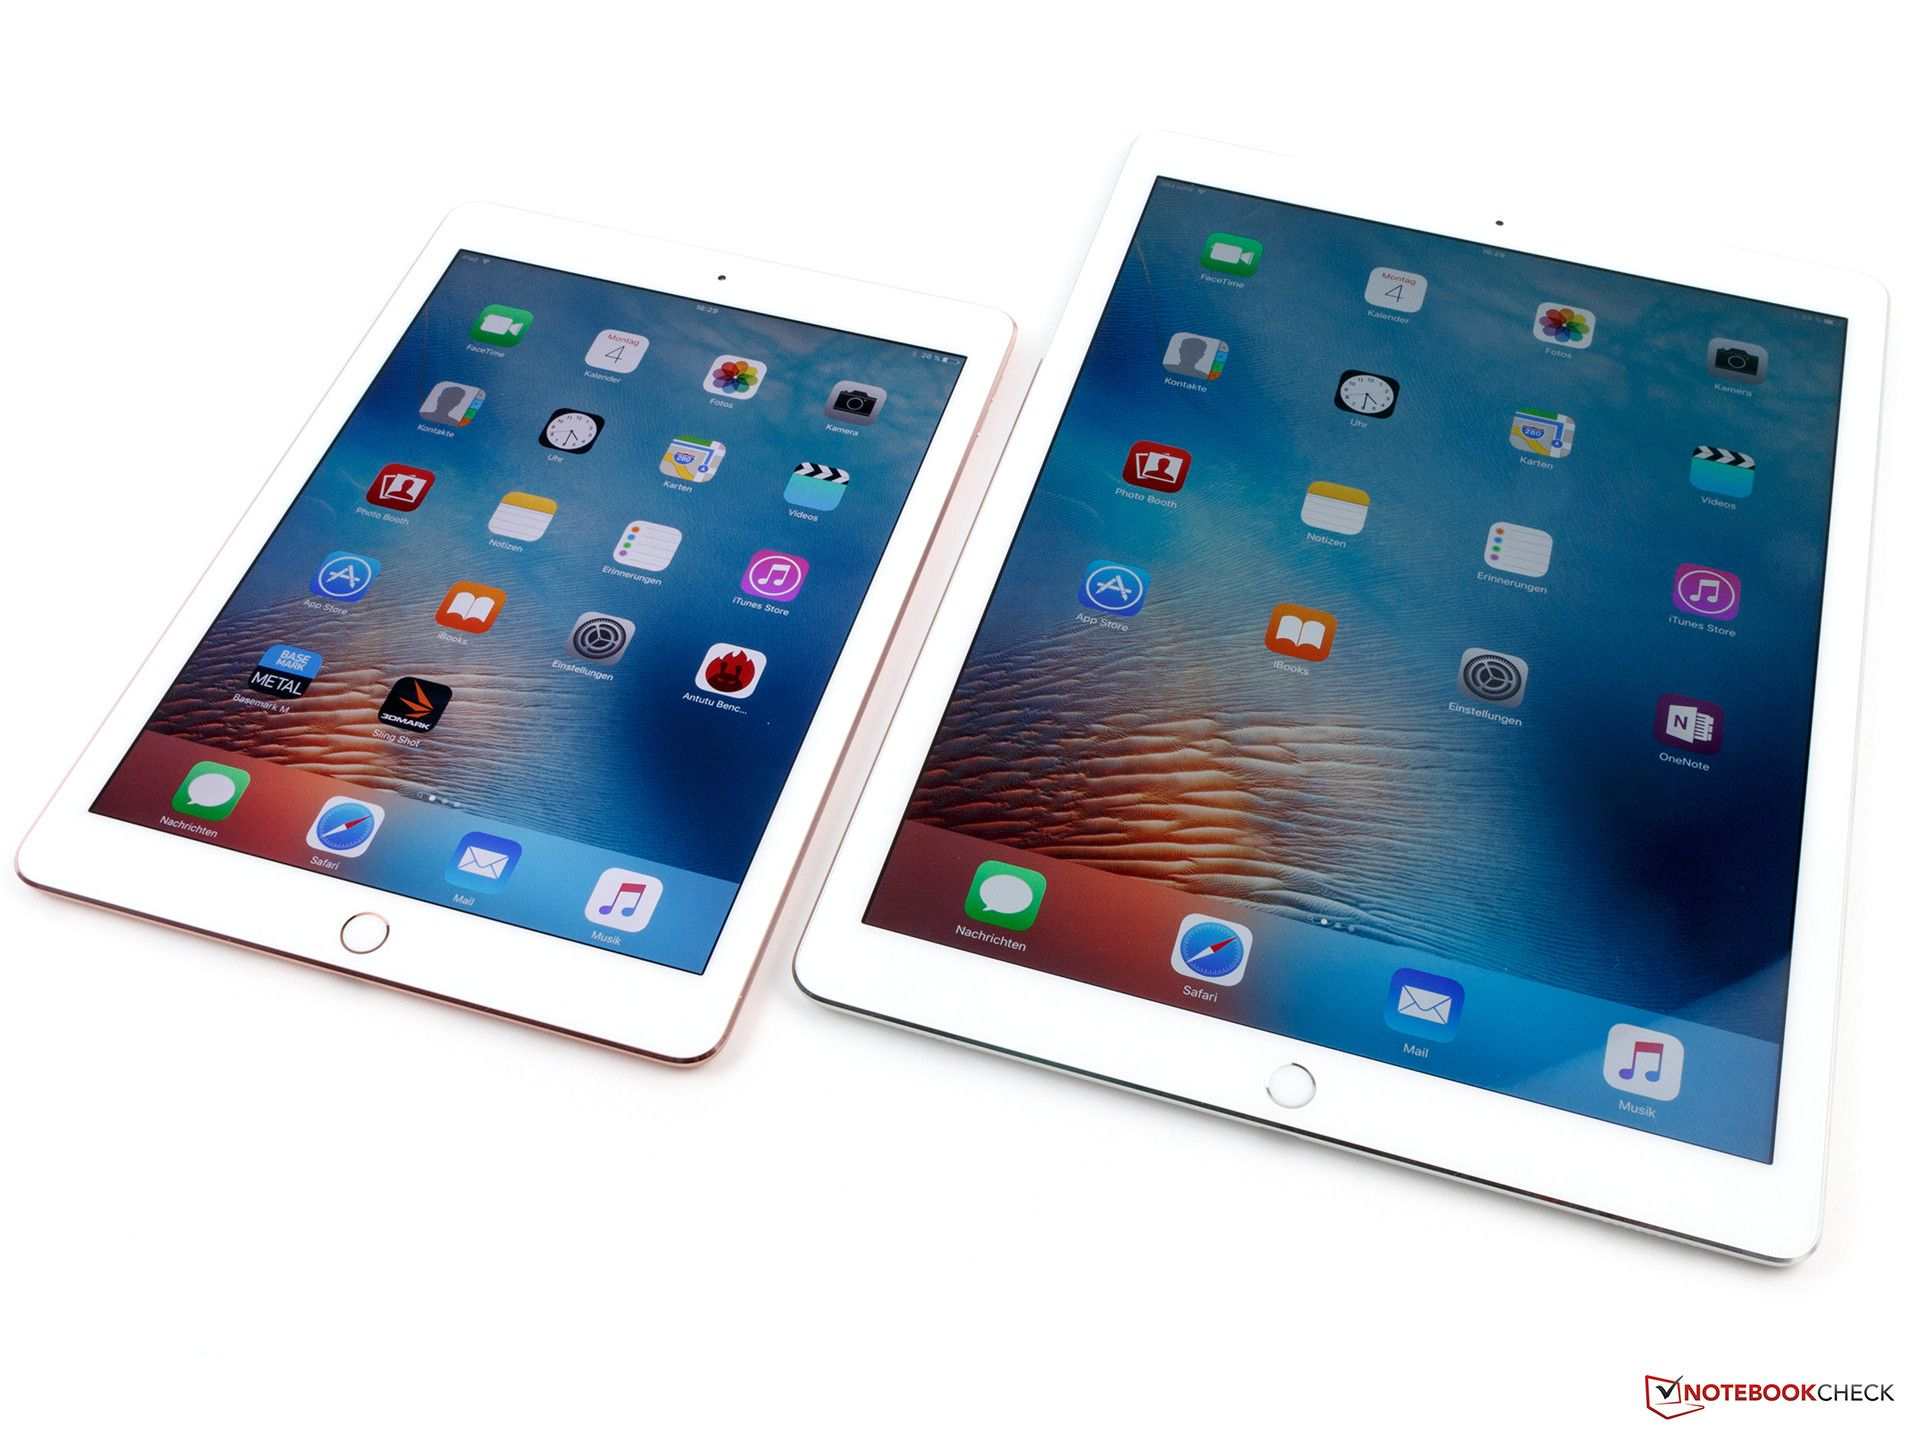 5 Faq Ipad Tablet Mobile Device In